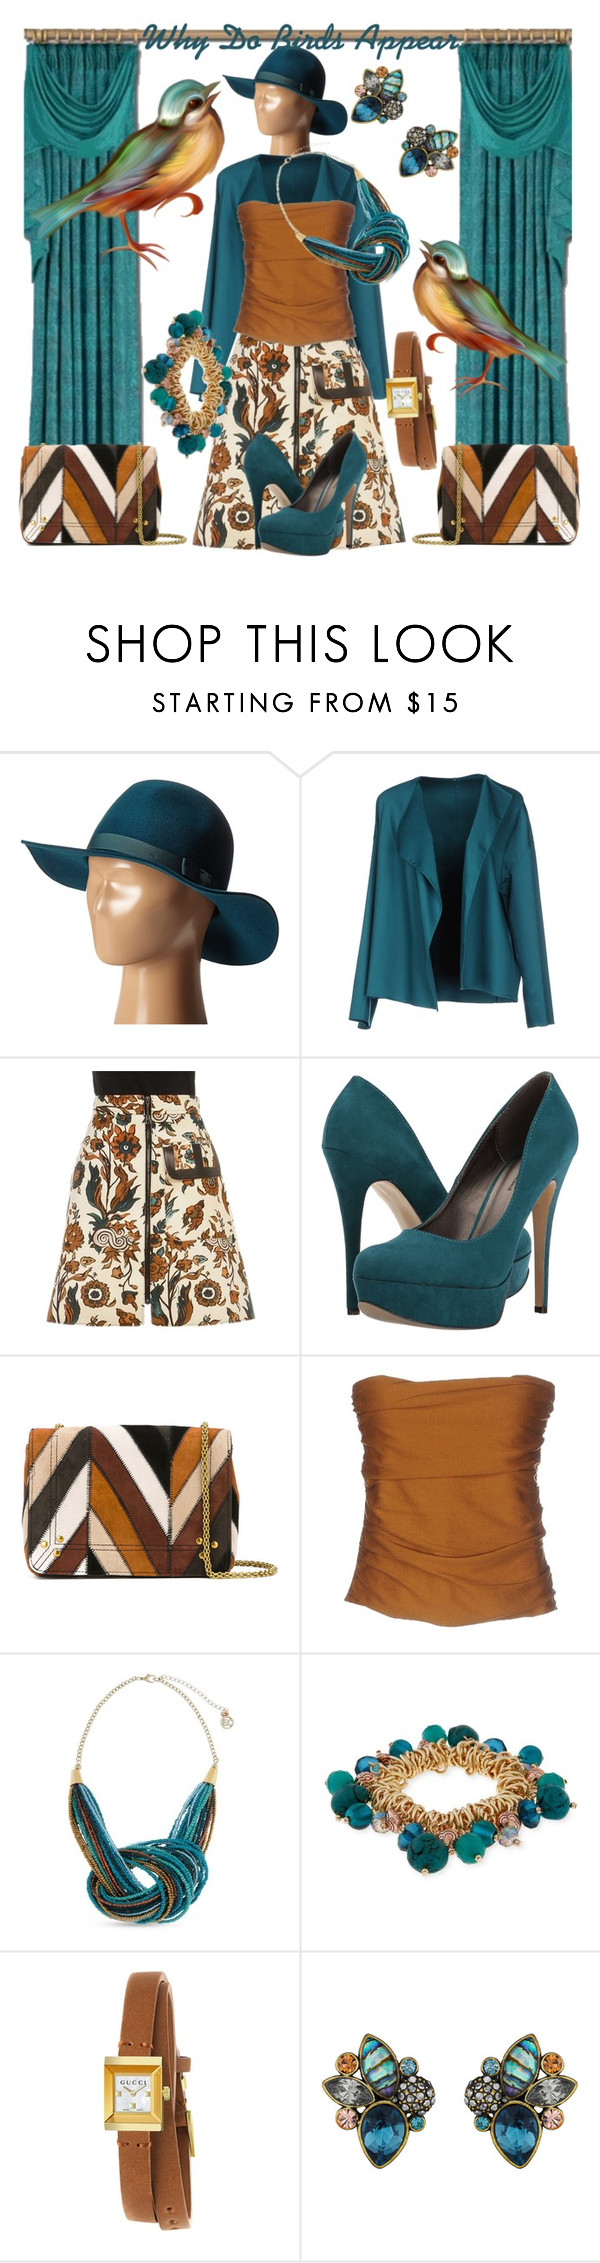 """""""They Long To Be Close To Her"""" by sharee64 ❤ liked on Polyvore featuring Brixton, N_8, Louis Vuitton, Michael Antonio, Jérôme Dreyfuss, Erika Cavallini Semi-Couture, Erica Lyons, Gucci and Chloe + Isabel"""